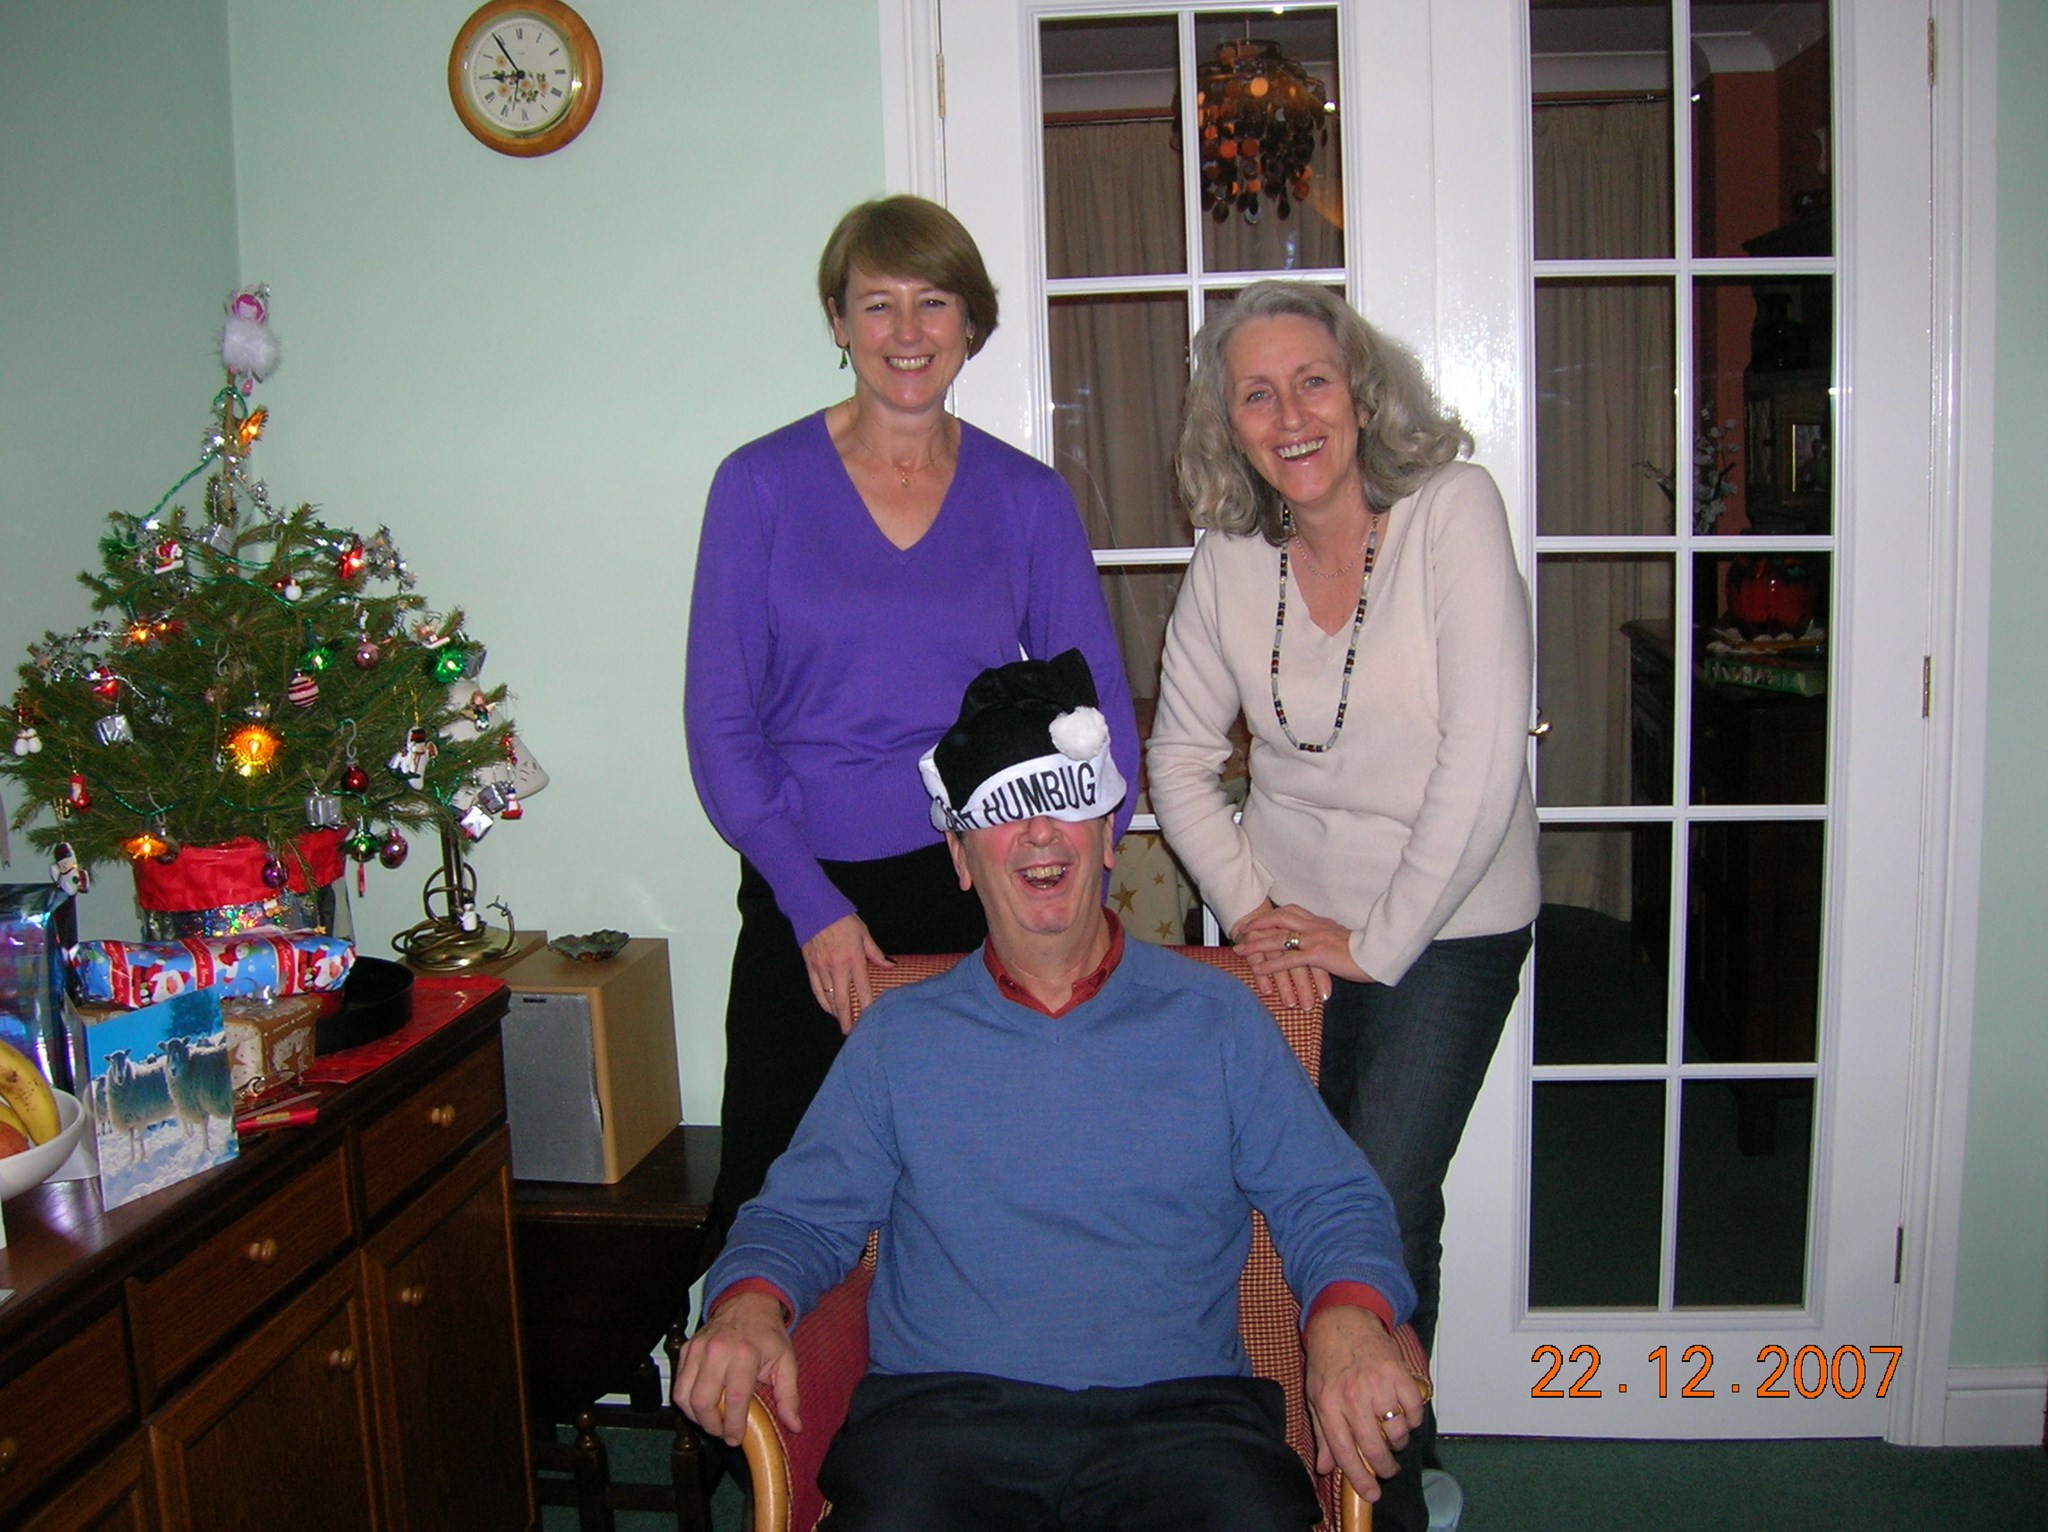 Celebrating Christmas with Christine & Jane in 2007